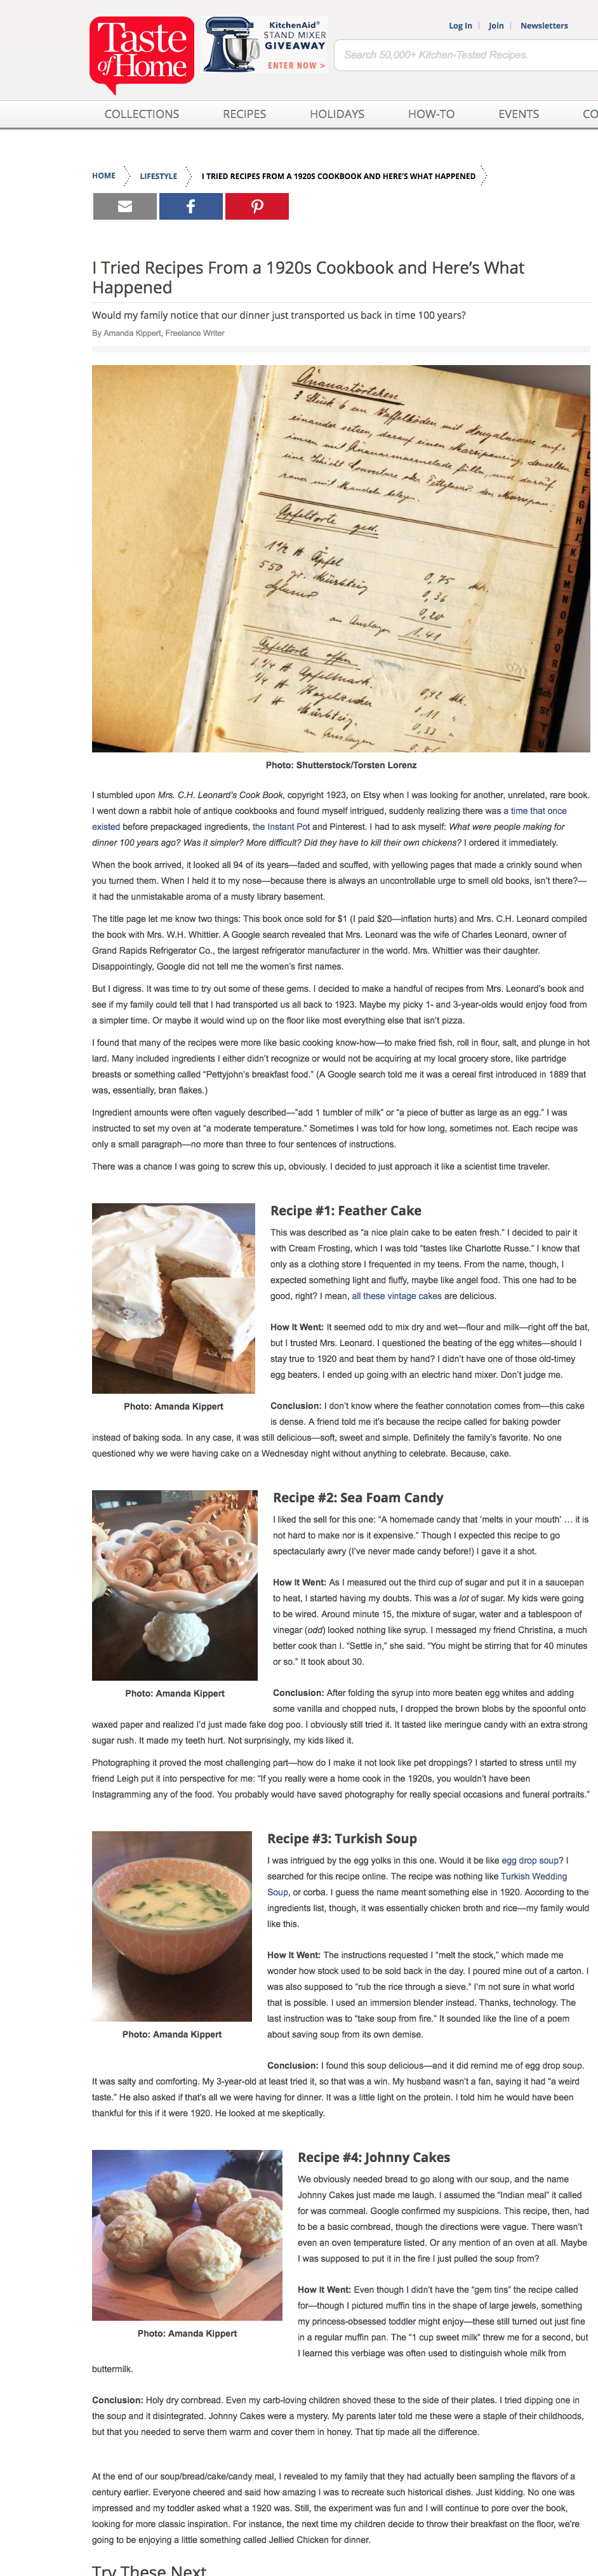 screencapture-tasteofhome-article-tried-recipes-1920s-cookbook-heres-happened-1515456200080.png